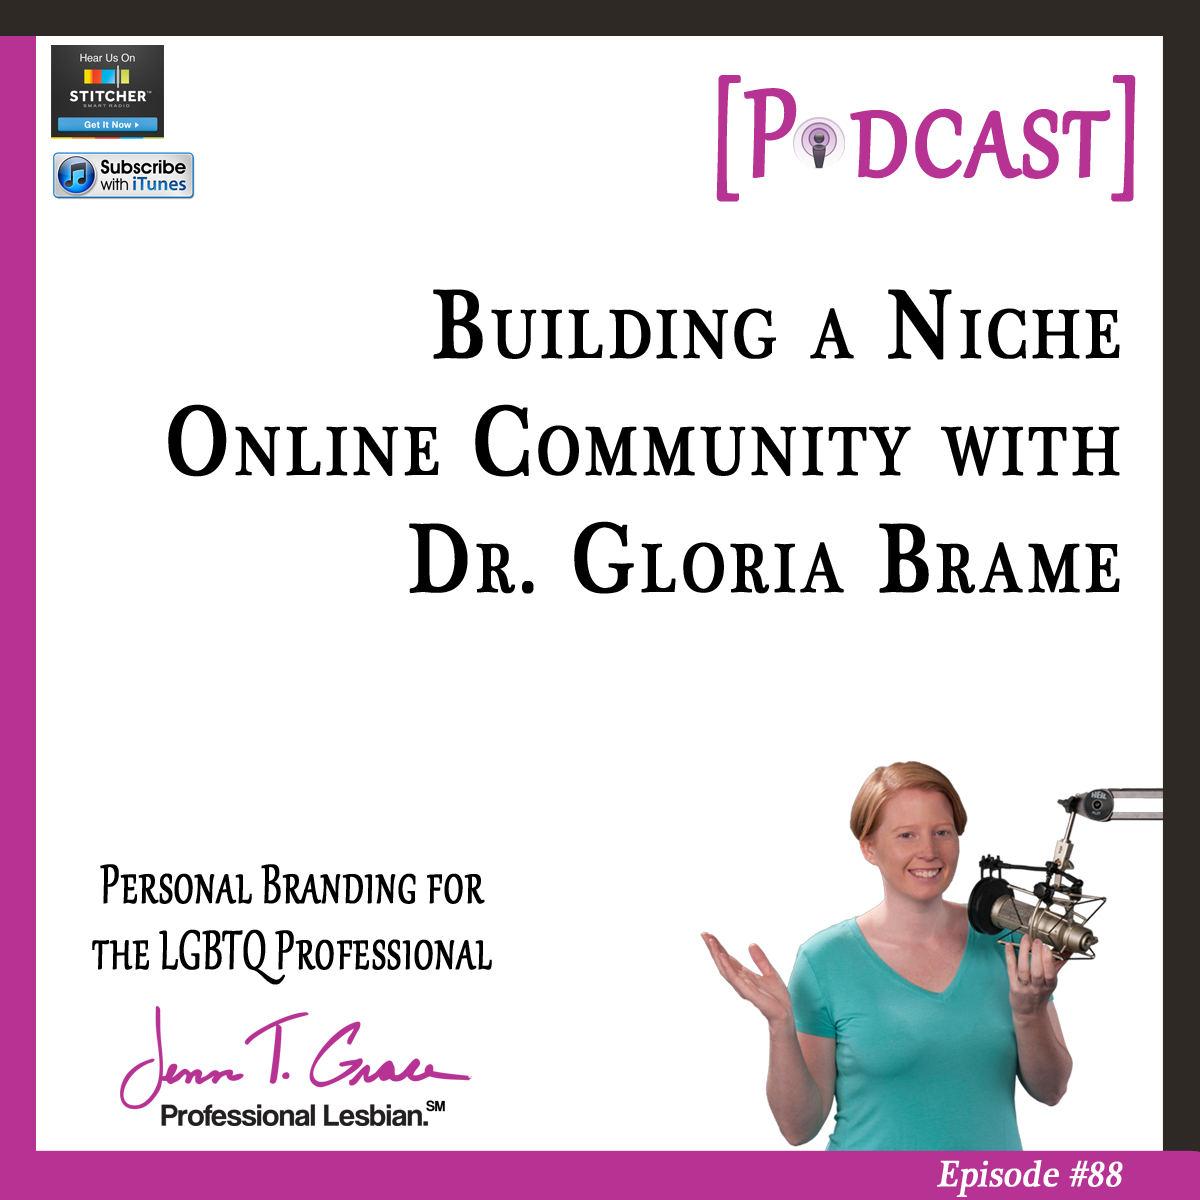 #88: Building a Niche Online Community with Dr. Gloria Brame